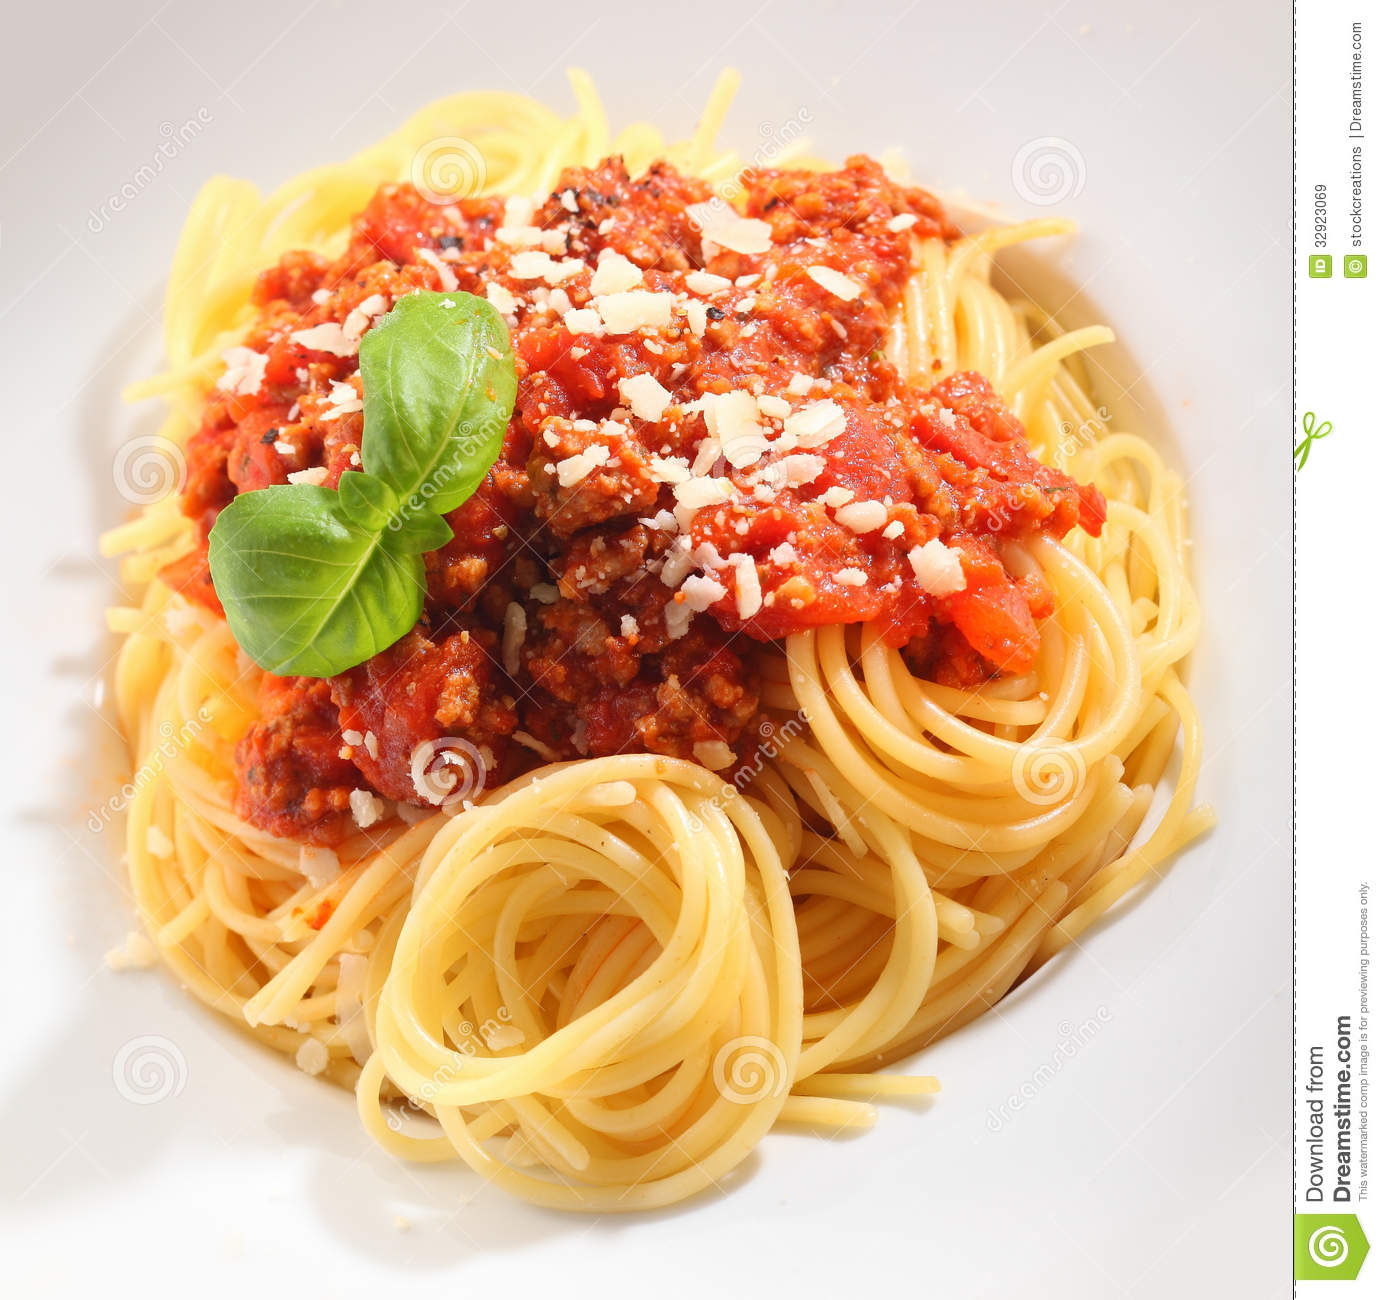 Beautifully Presented Spaghetti Bolognaise Stock Image